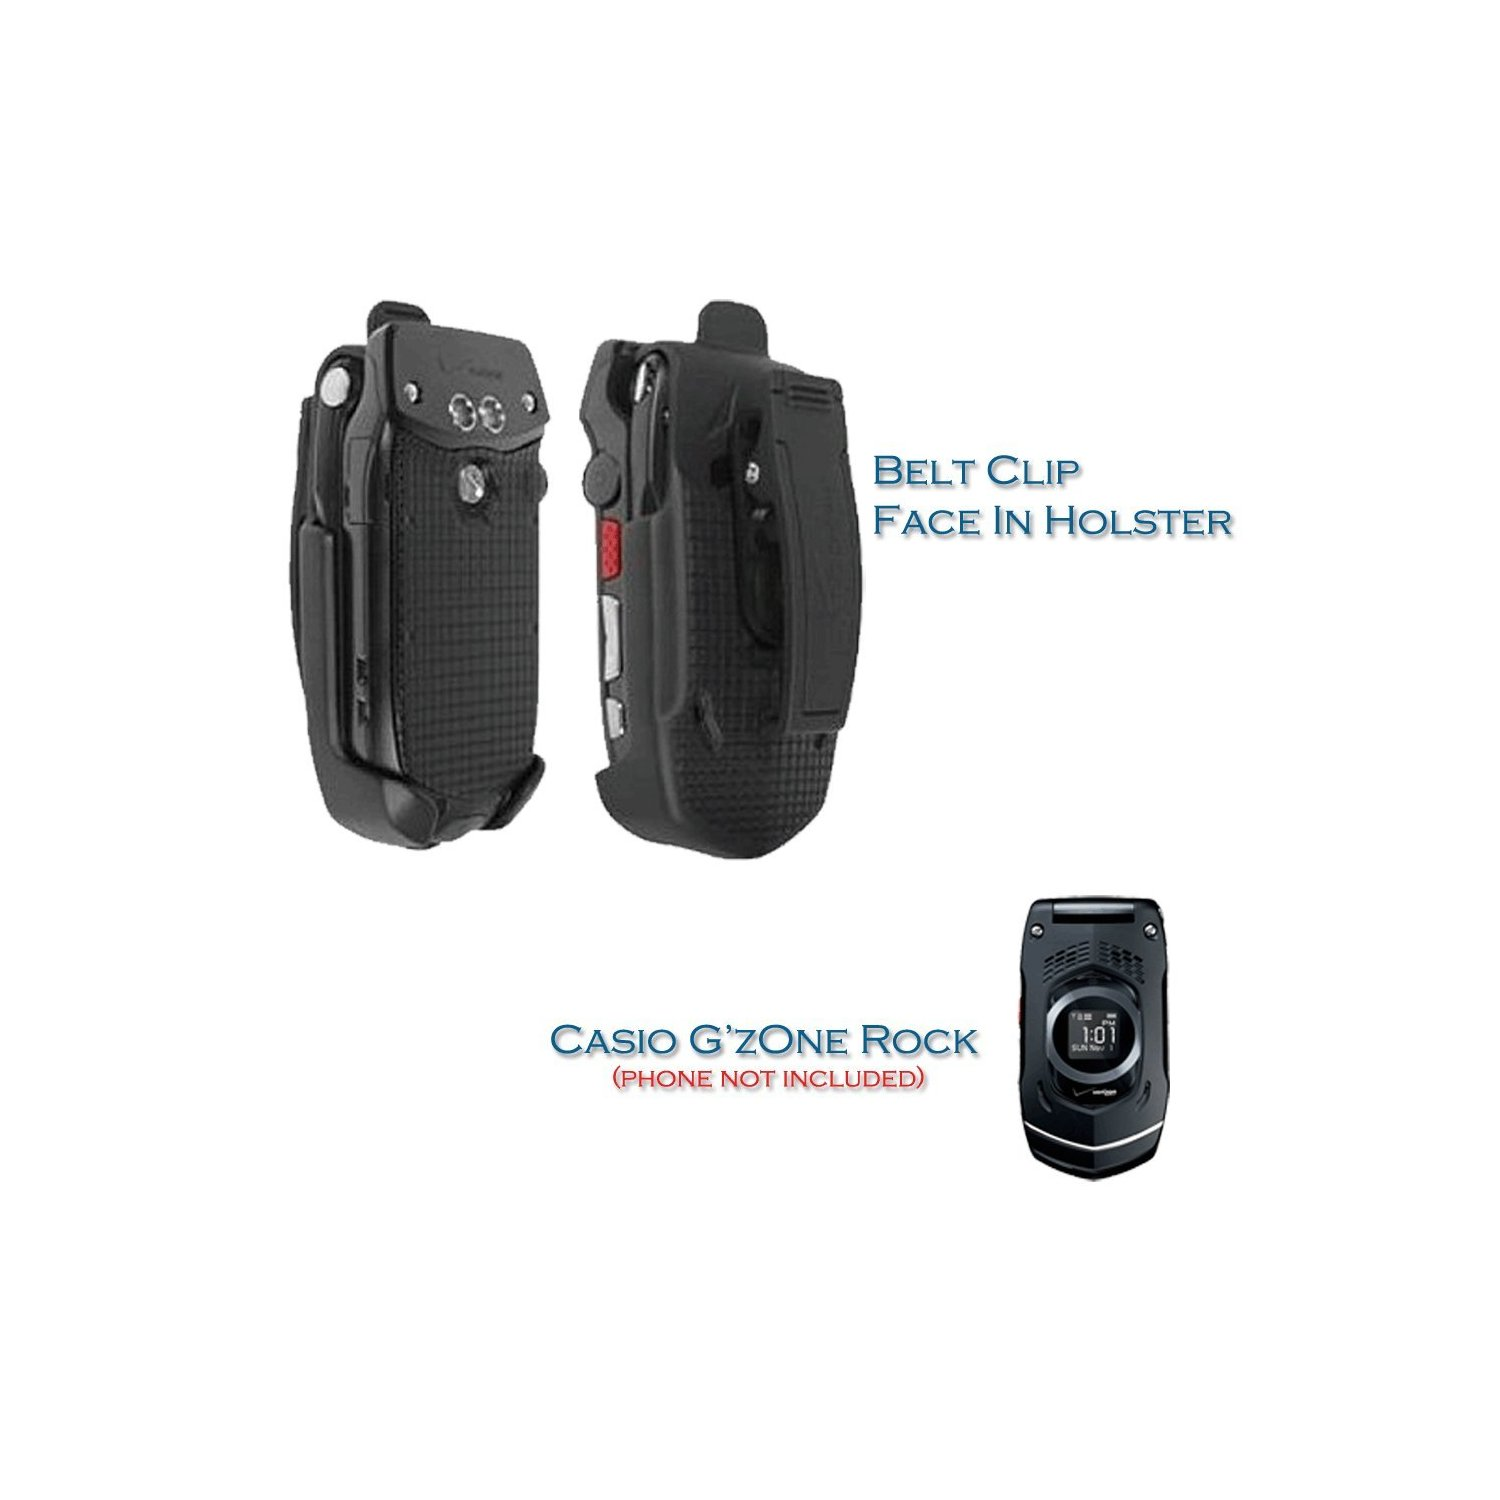 OEM Verizon Belt Clip Holster for Casio G'zOne Rock C731